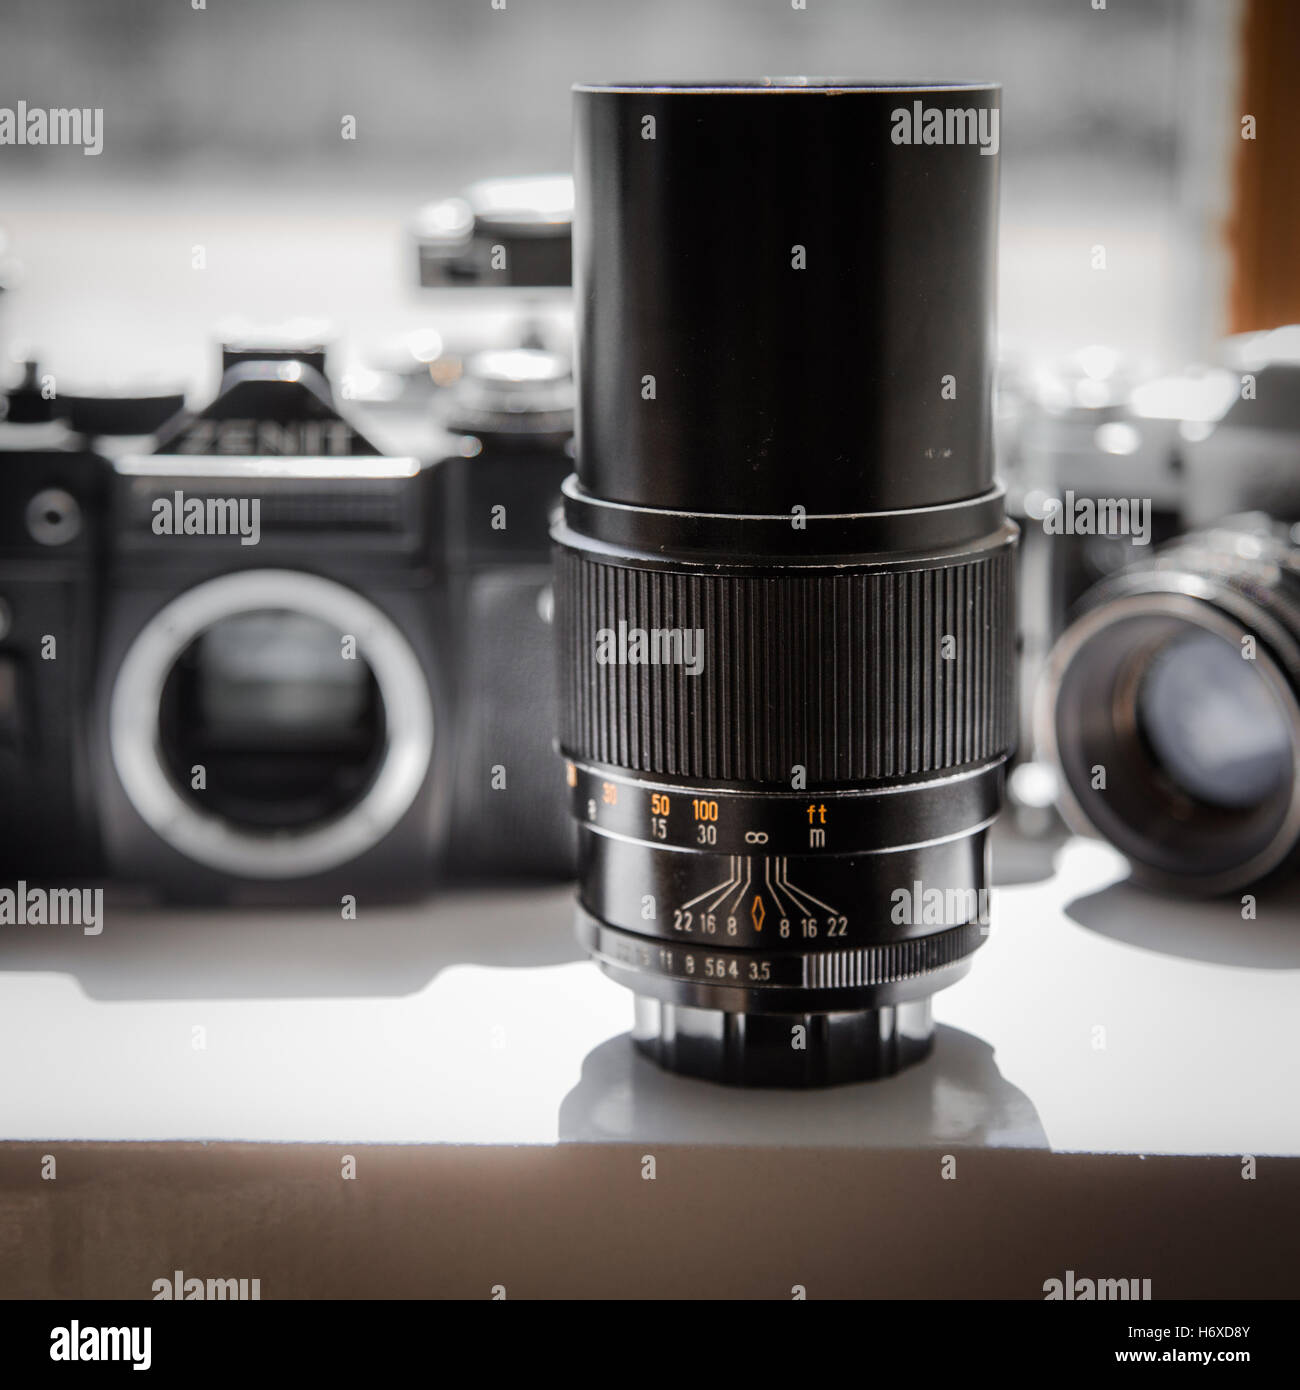 Retro camera lens and cameras - Stock Image